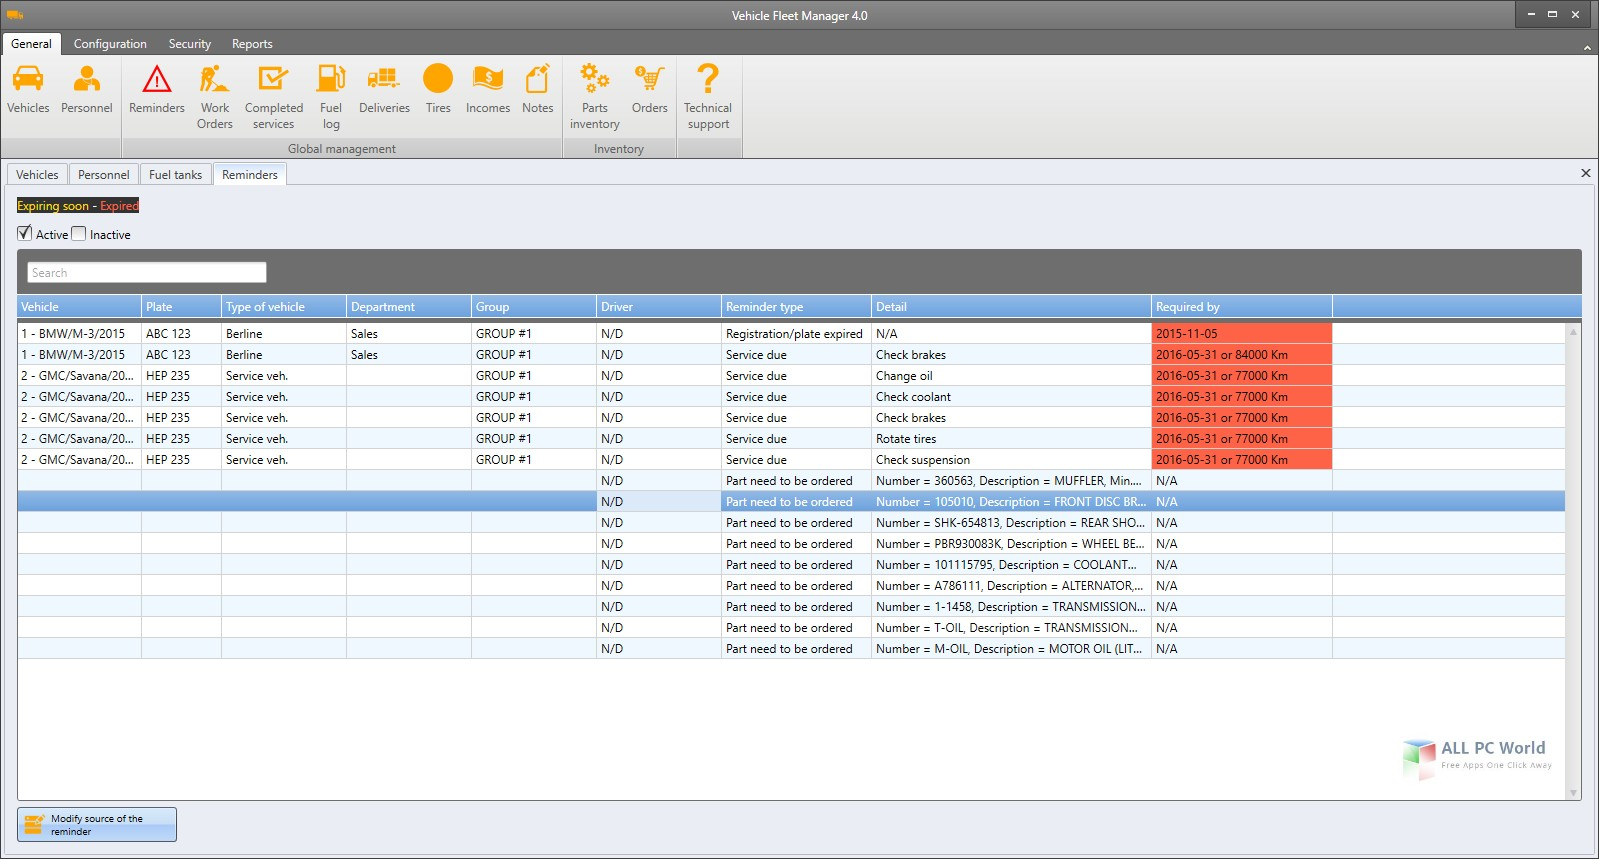 Vinitysoft Vehicle Fleet Manager 4.0